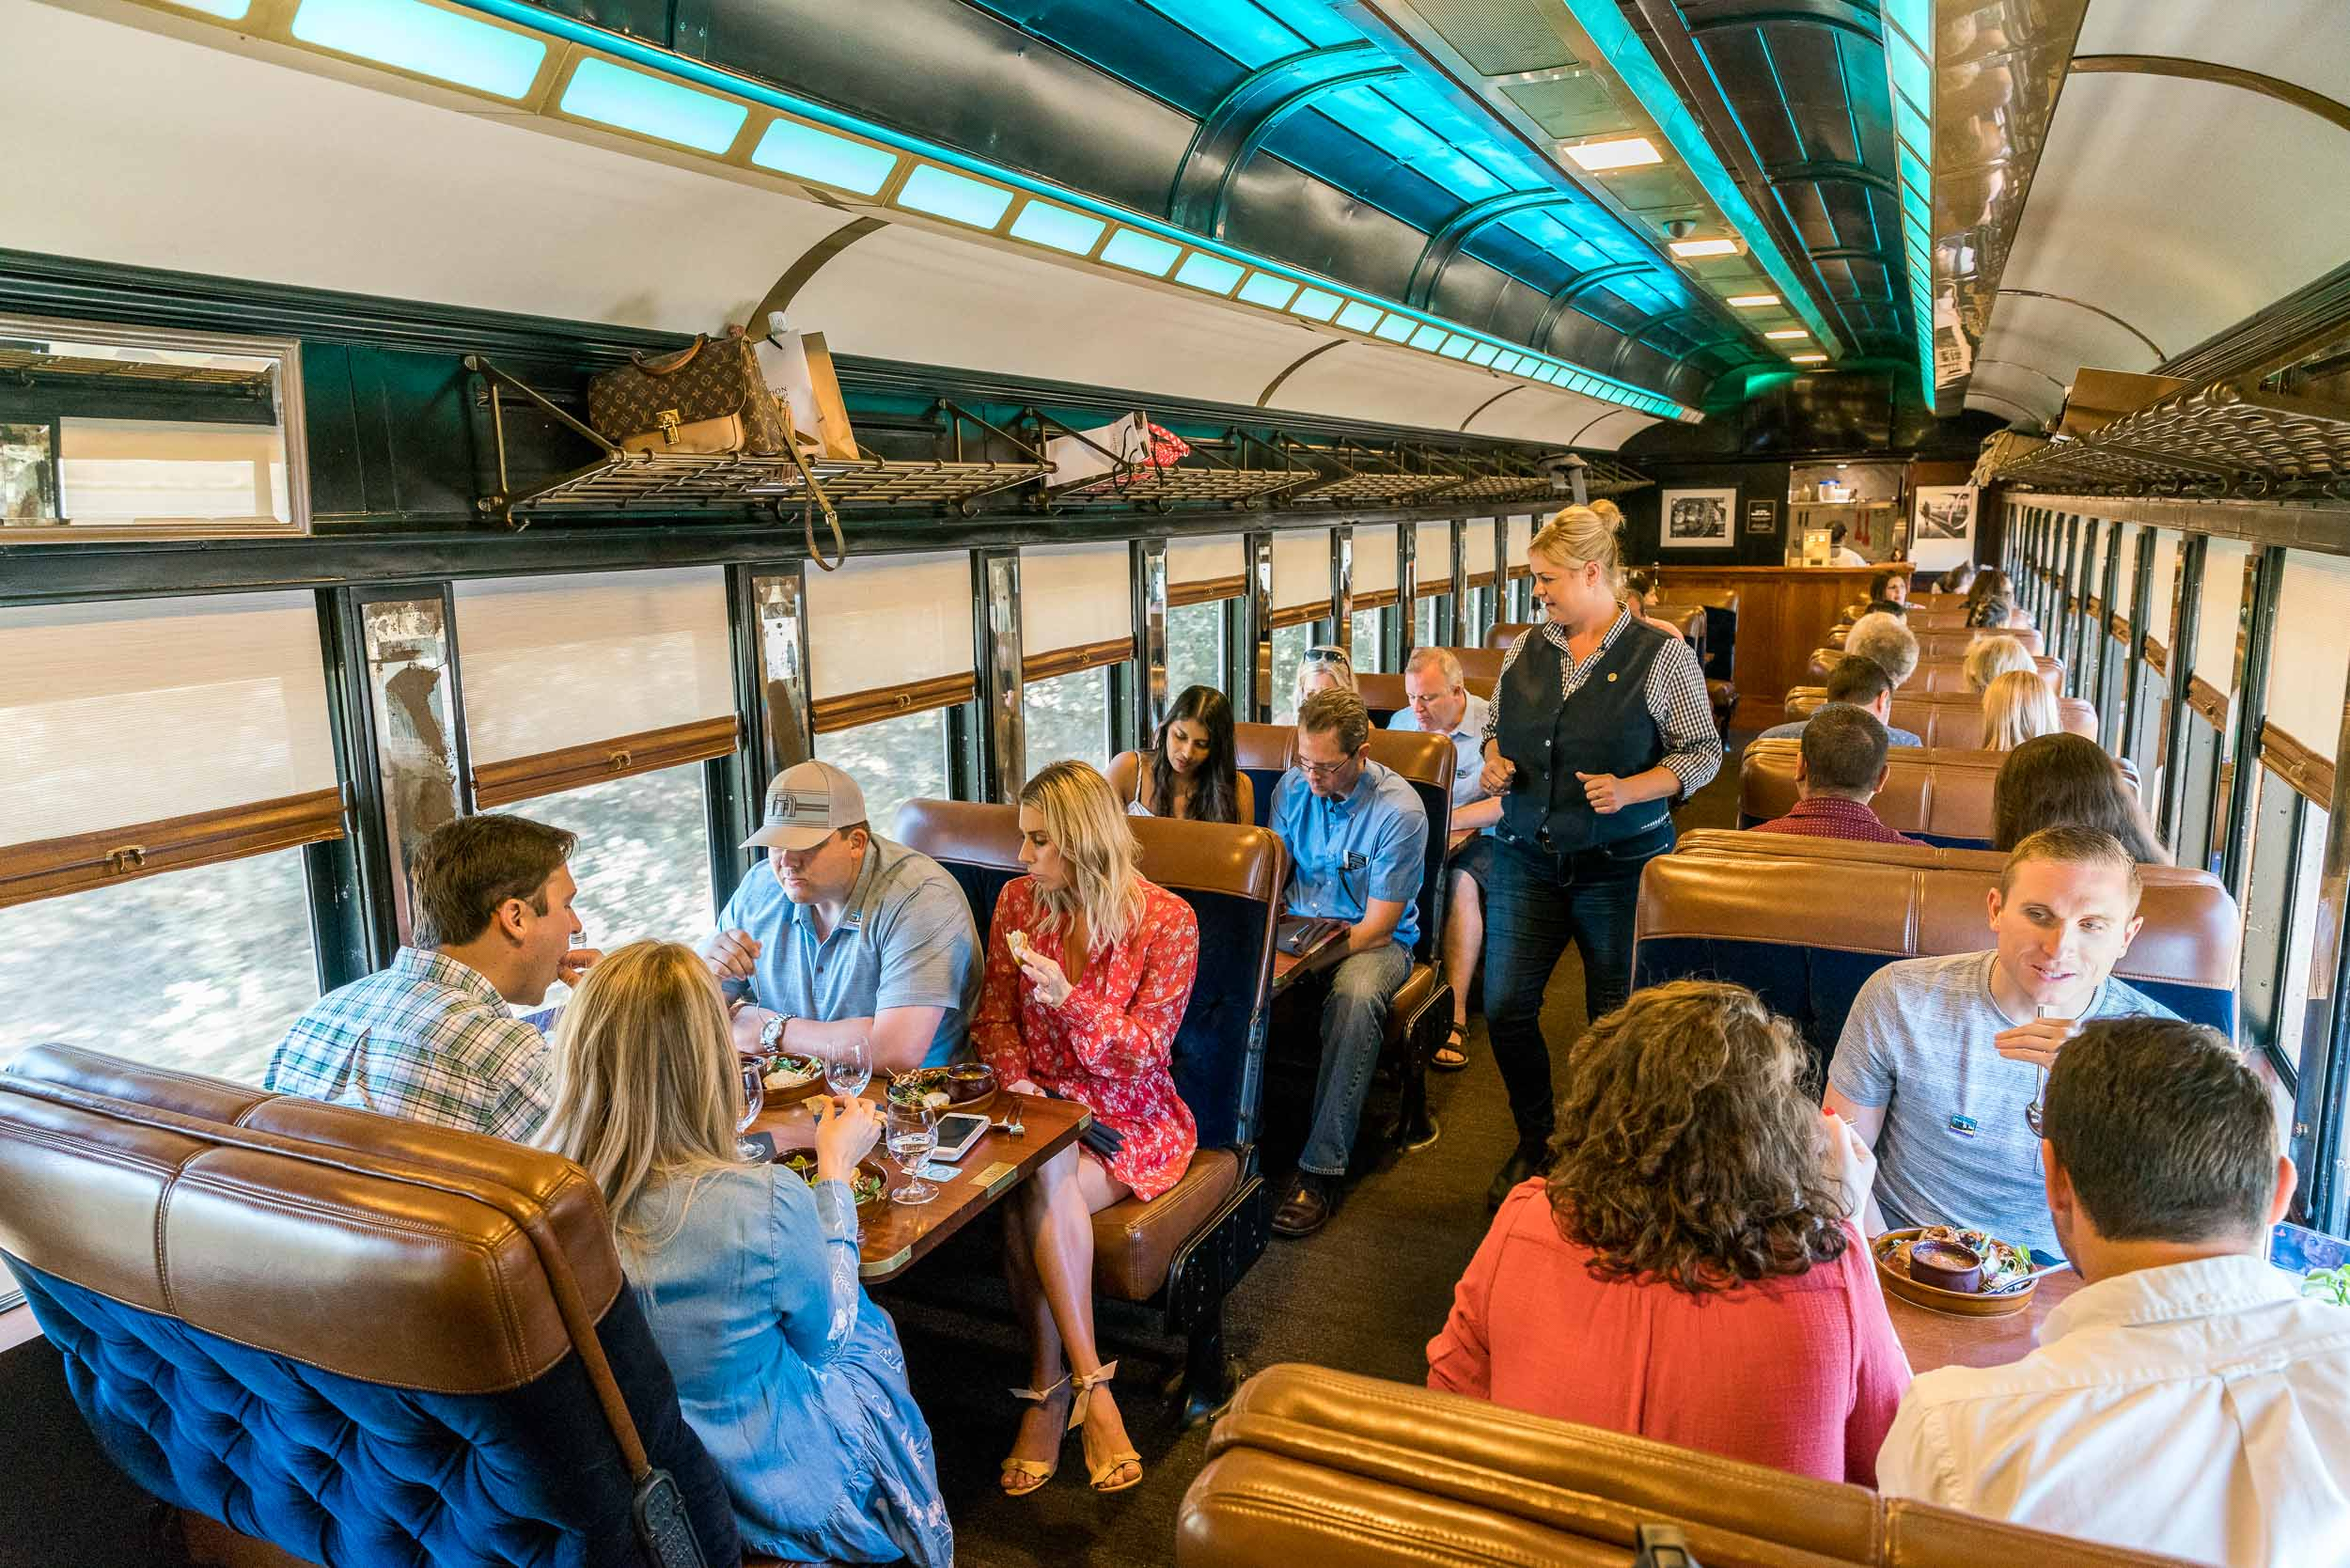 New in Napa Valley - wine country restaurants, wine train, and sports bar.